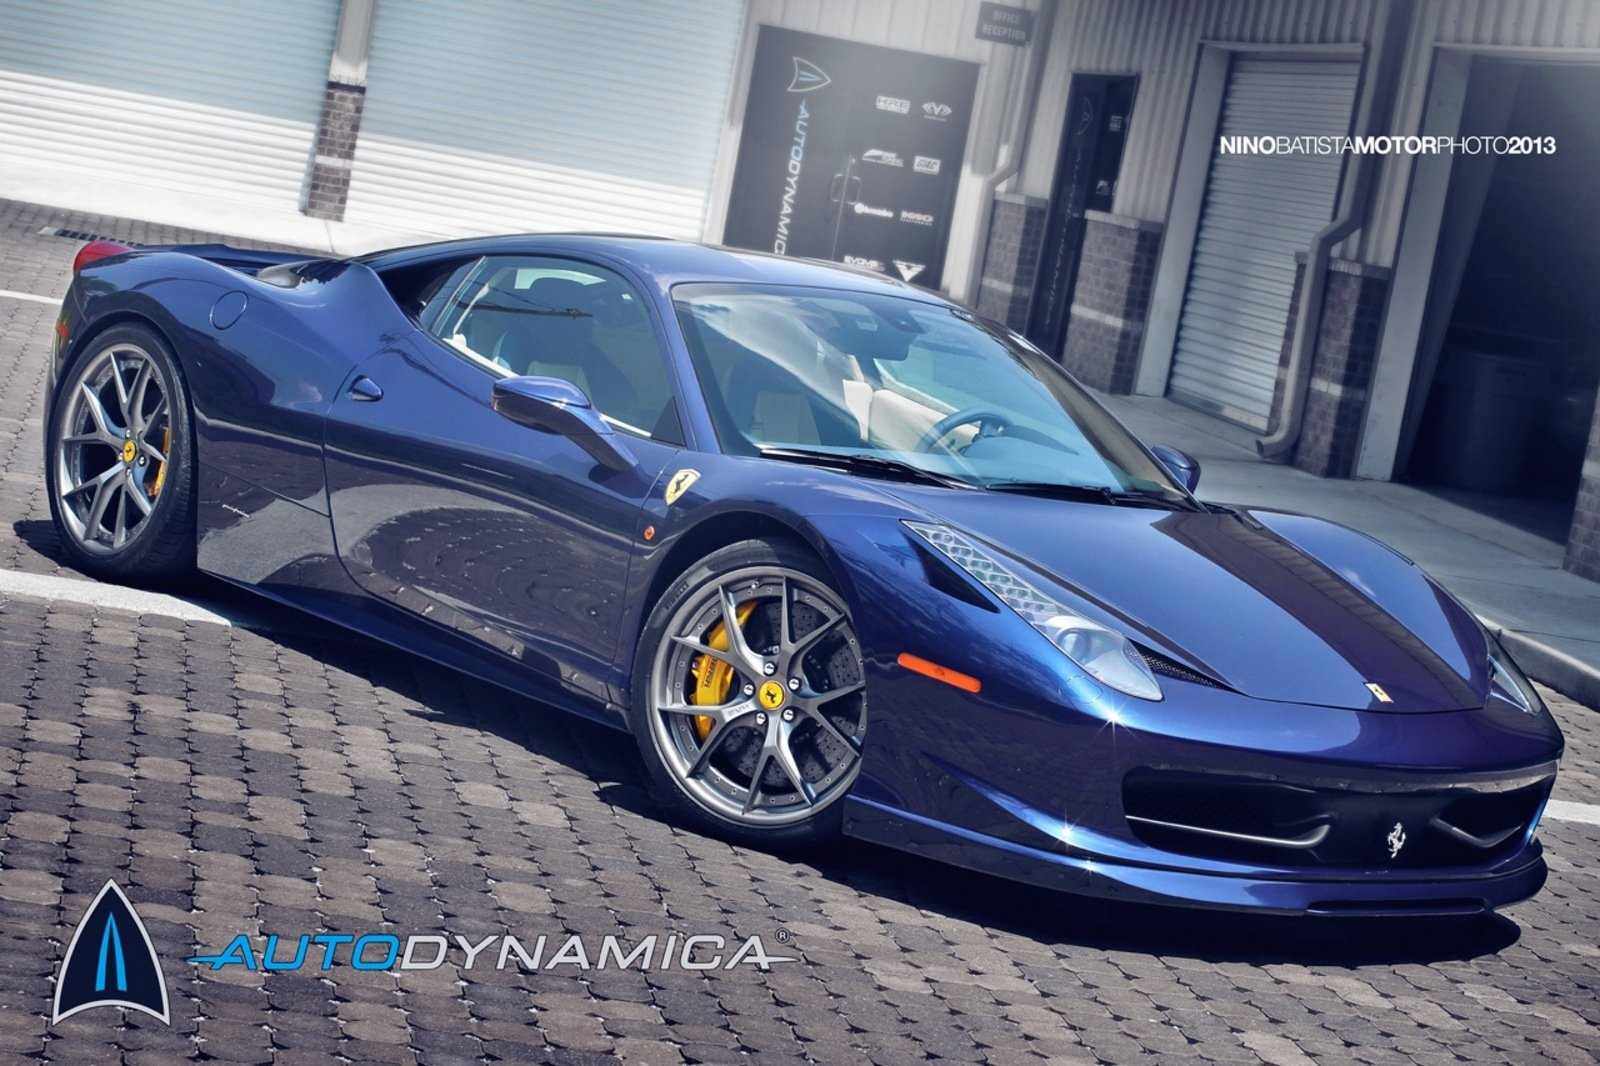 2013 ferrari 458 italia spyder by autodynamica review top speed. Black Bedroom Furniture Sets. Home Design Ideas